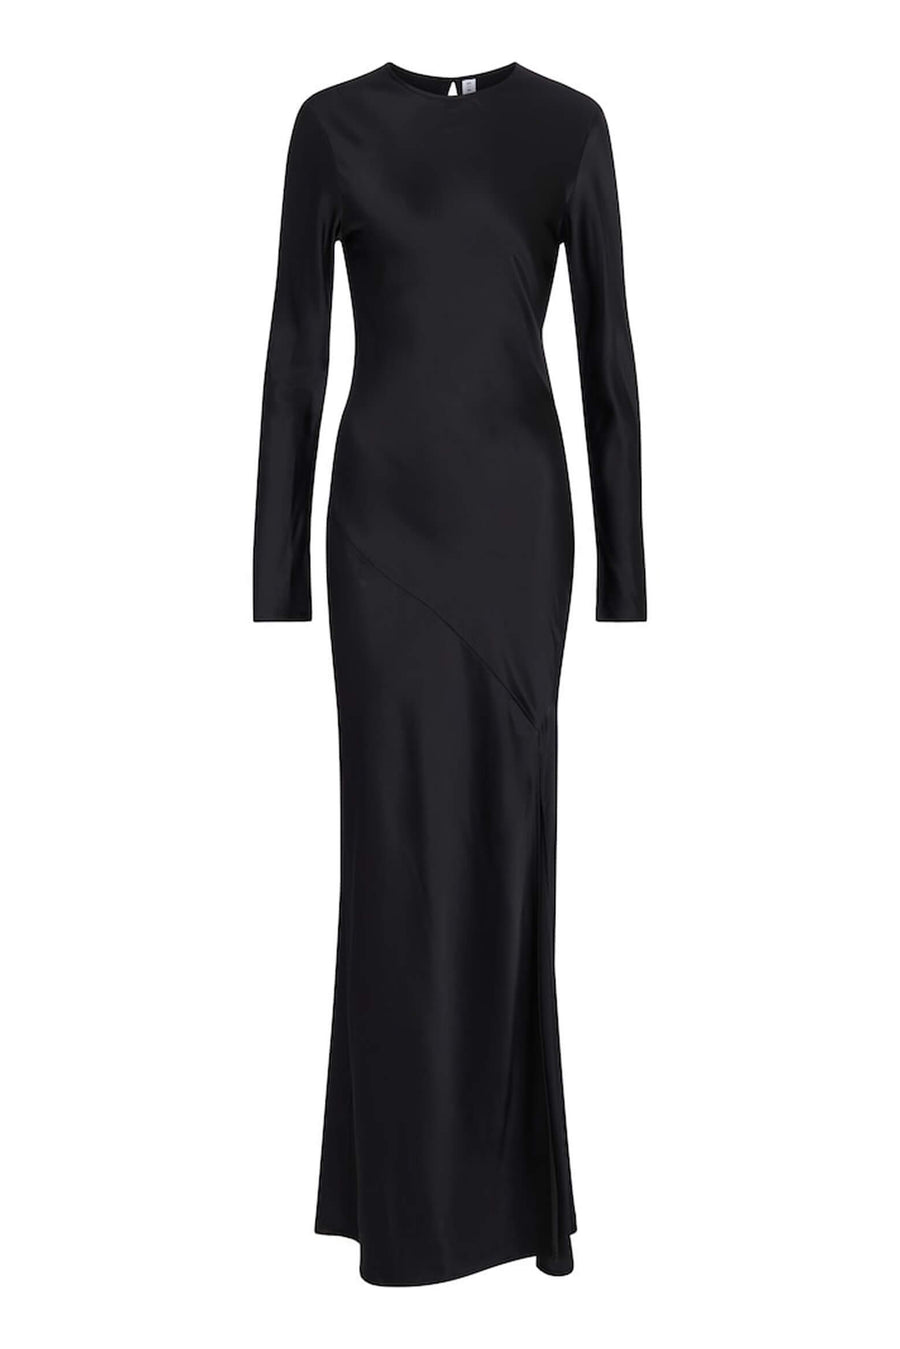 Sir The Label Soleil Dress in Black from The New Trend